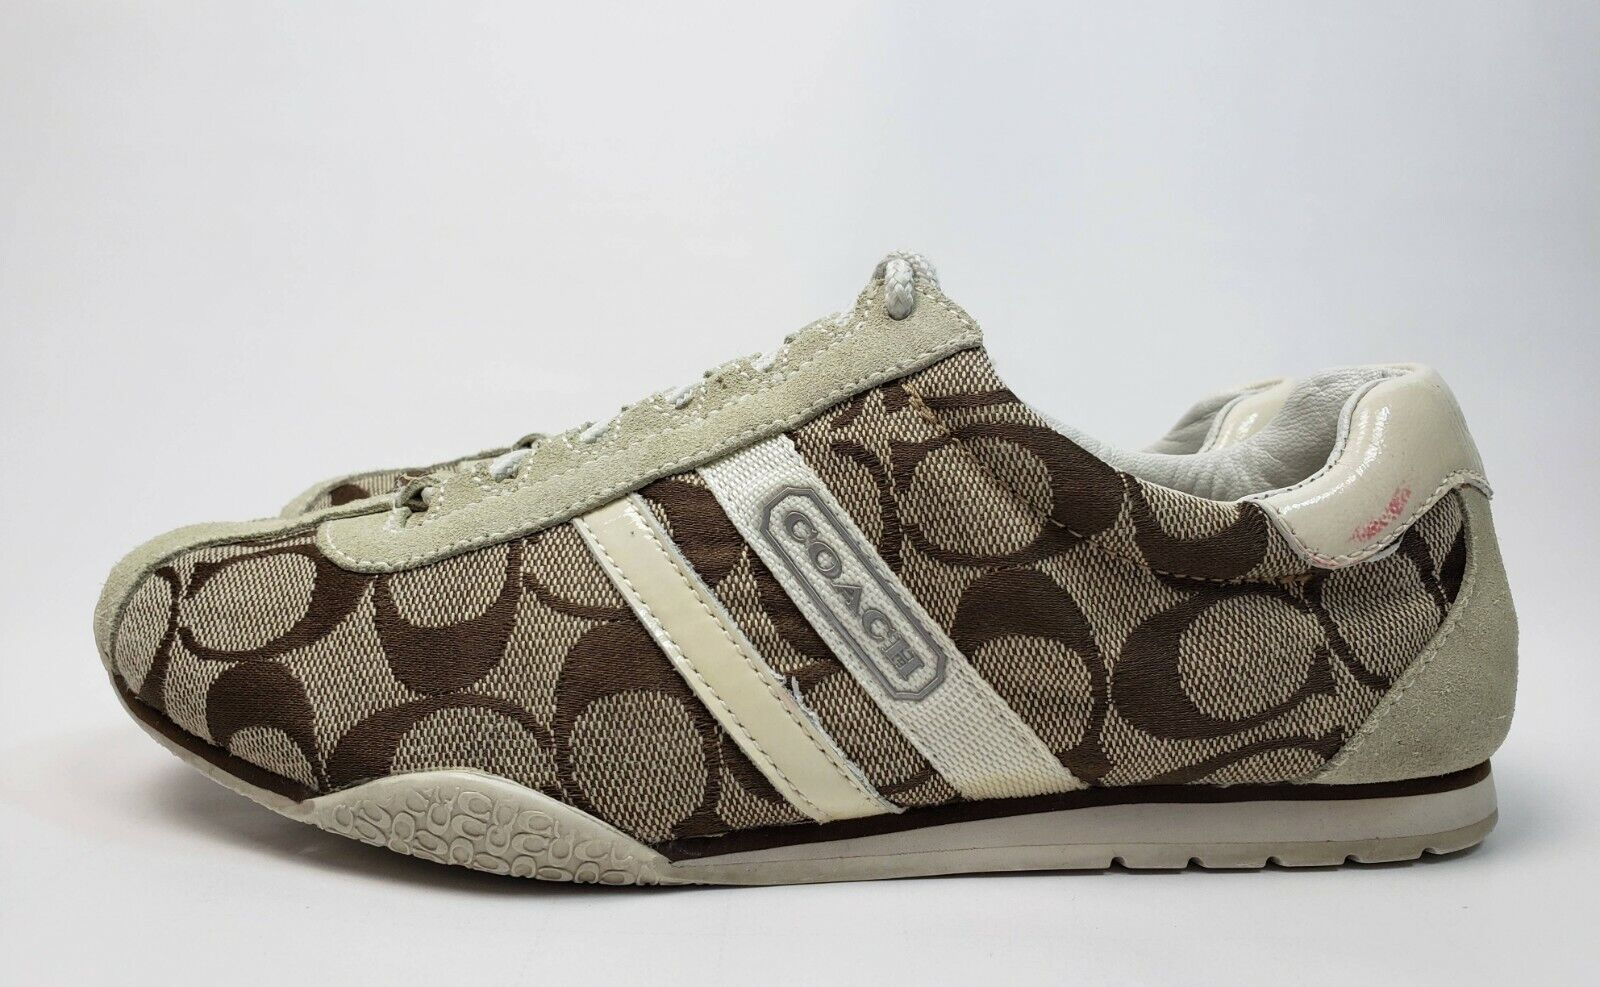 COACH Katelyn Monogram Brown Canvas Casual Lace Up Sneaker Shoe Womens Size 6.5